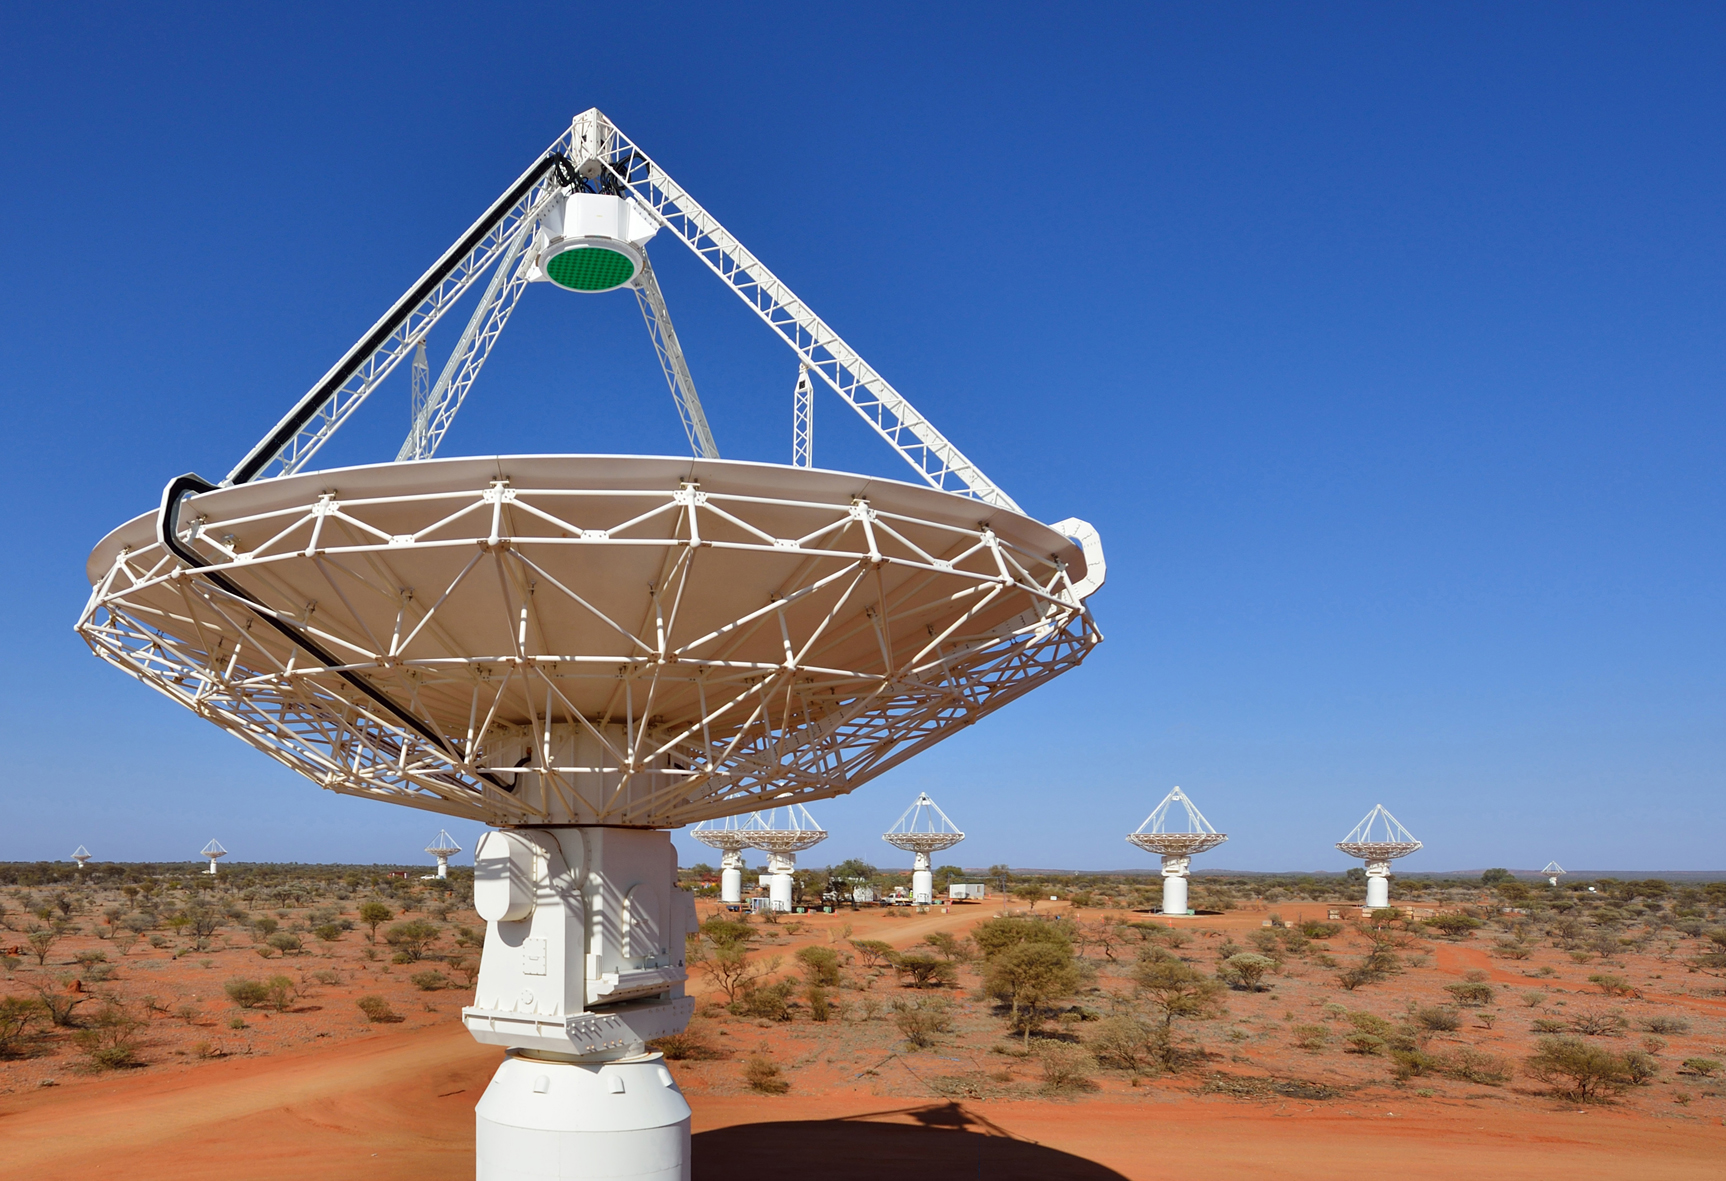 Antennas of CSIRO's ASKAP telescope at the Murchison Radio-astronomy Observatory in Western Australia.